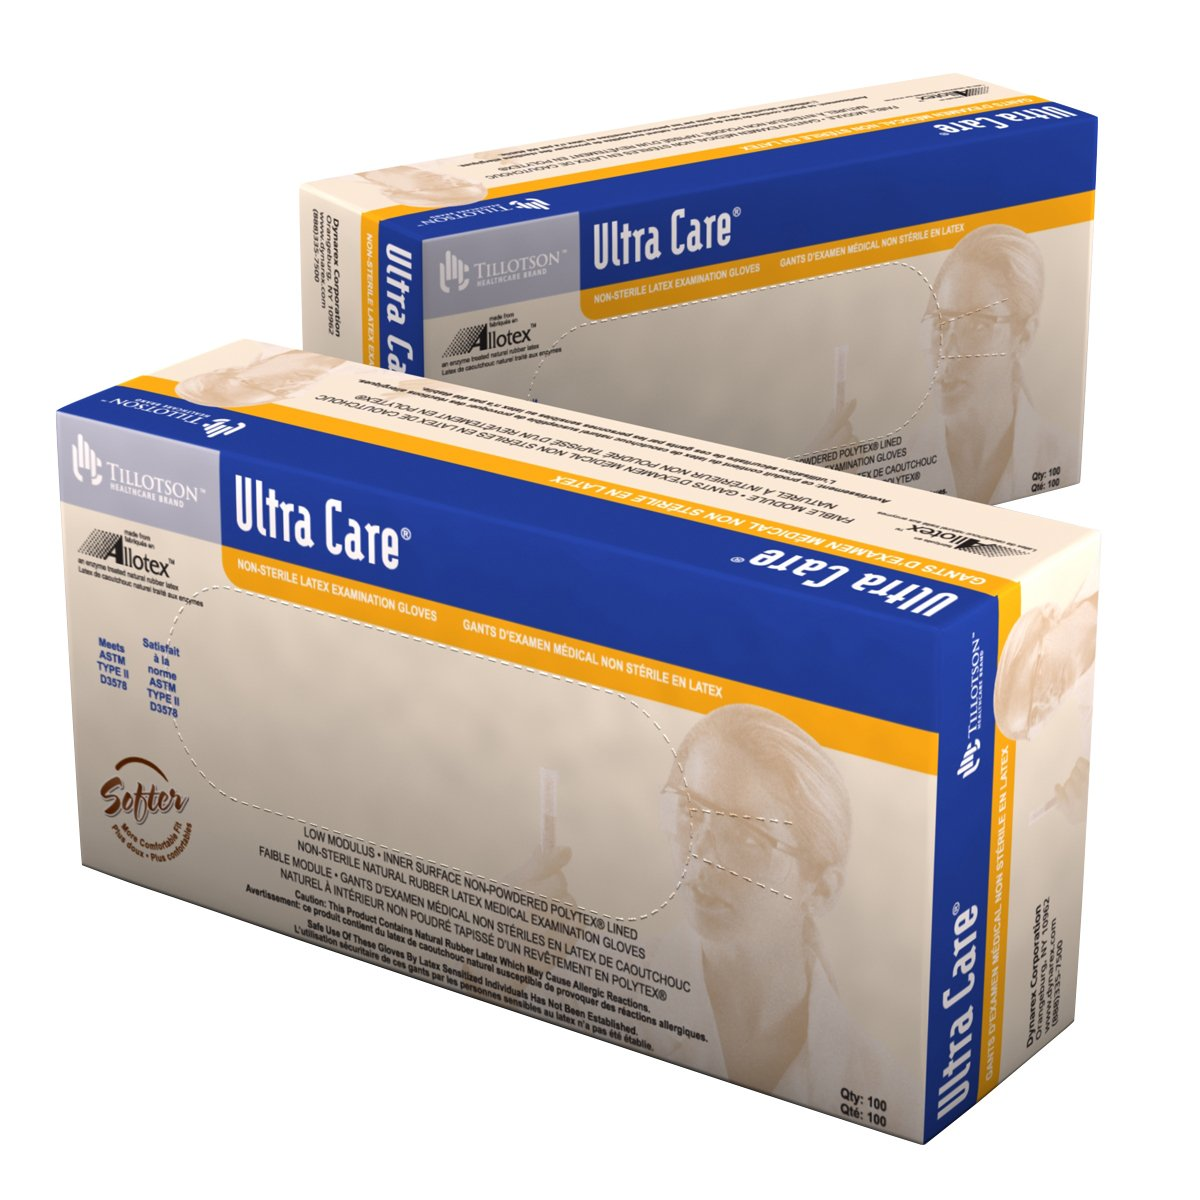 Dynarex Ultra Care Latex Exam Gloves Non-Sterile, Large, 10 Count